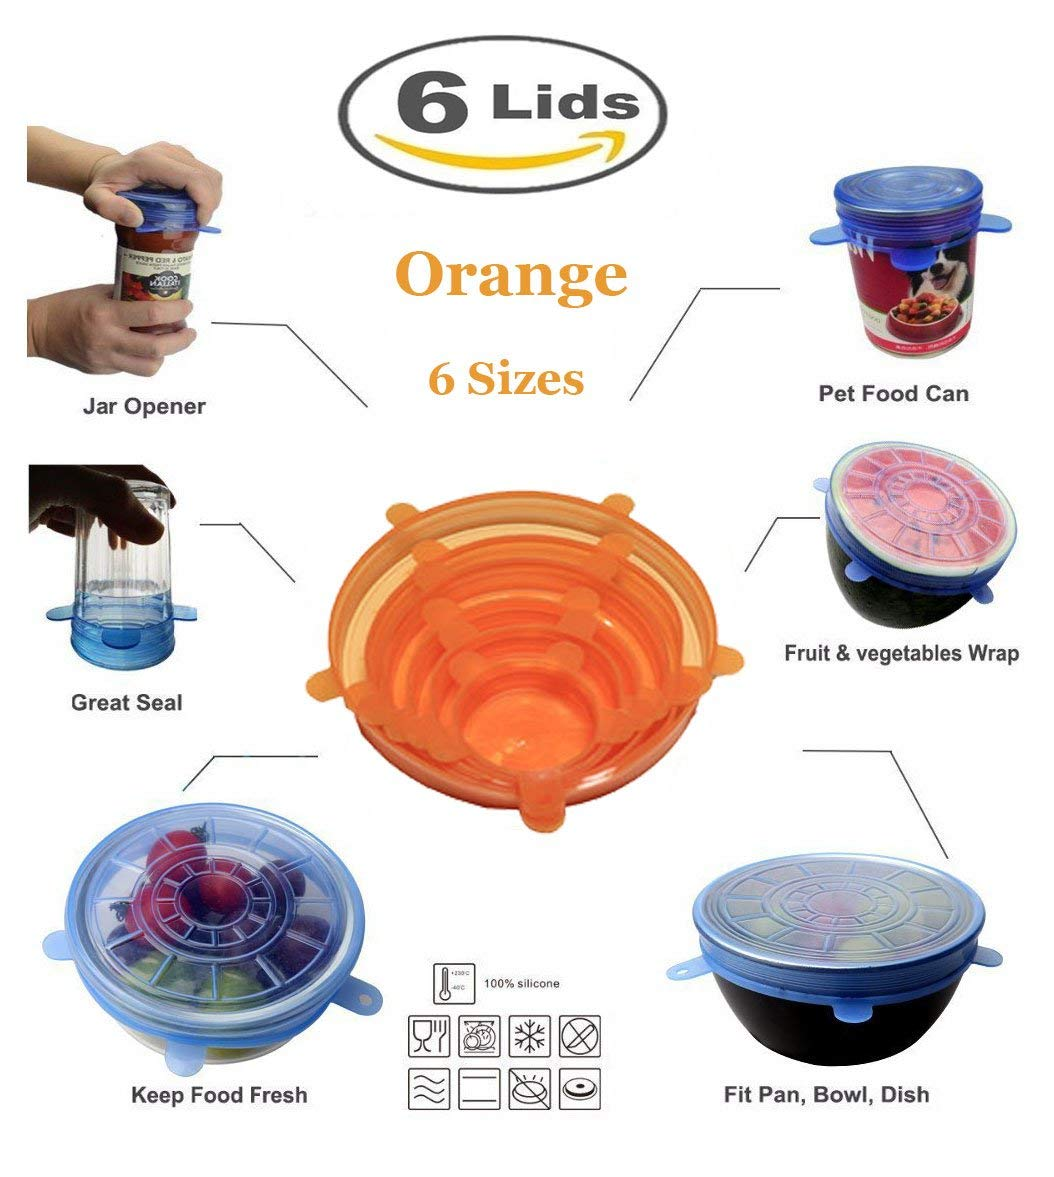 Silicone Stretch Lids Reusable,6-Pack Of Various Sizes Silicone Bowl Lids,Food Saver Covers,Wrap Bowl Pot Cup Lid- BPA Free,Dishwasher,Microwave,Oven and Freezer Safe (6 pcs, Orange)